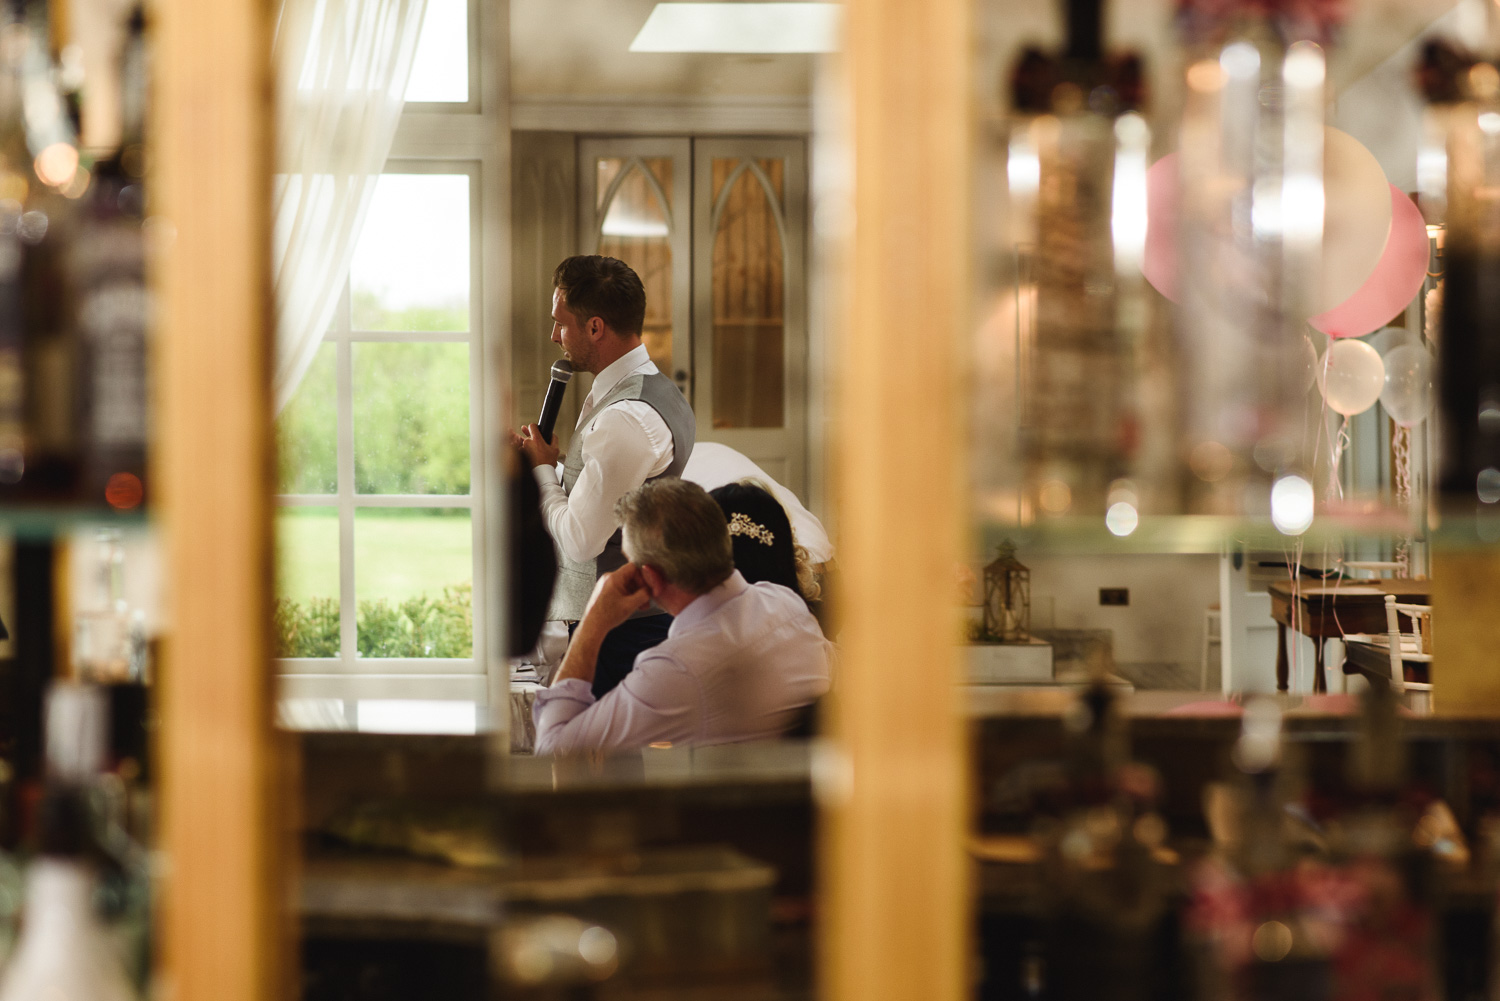 A nervous Grooms speech in the Orangery at Lemore Manor near Hereford.